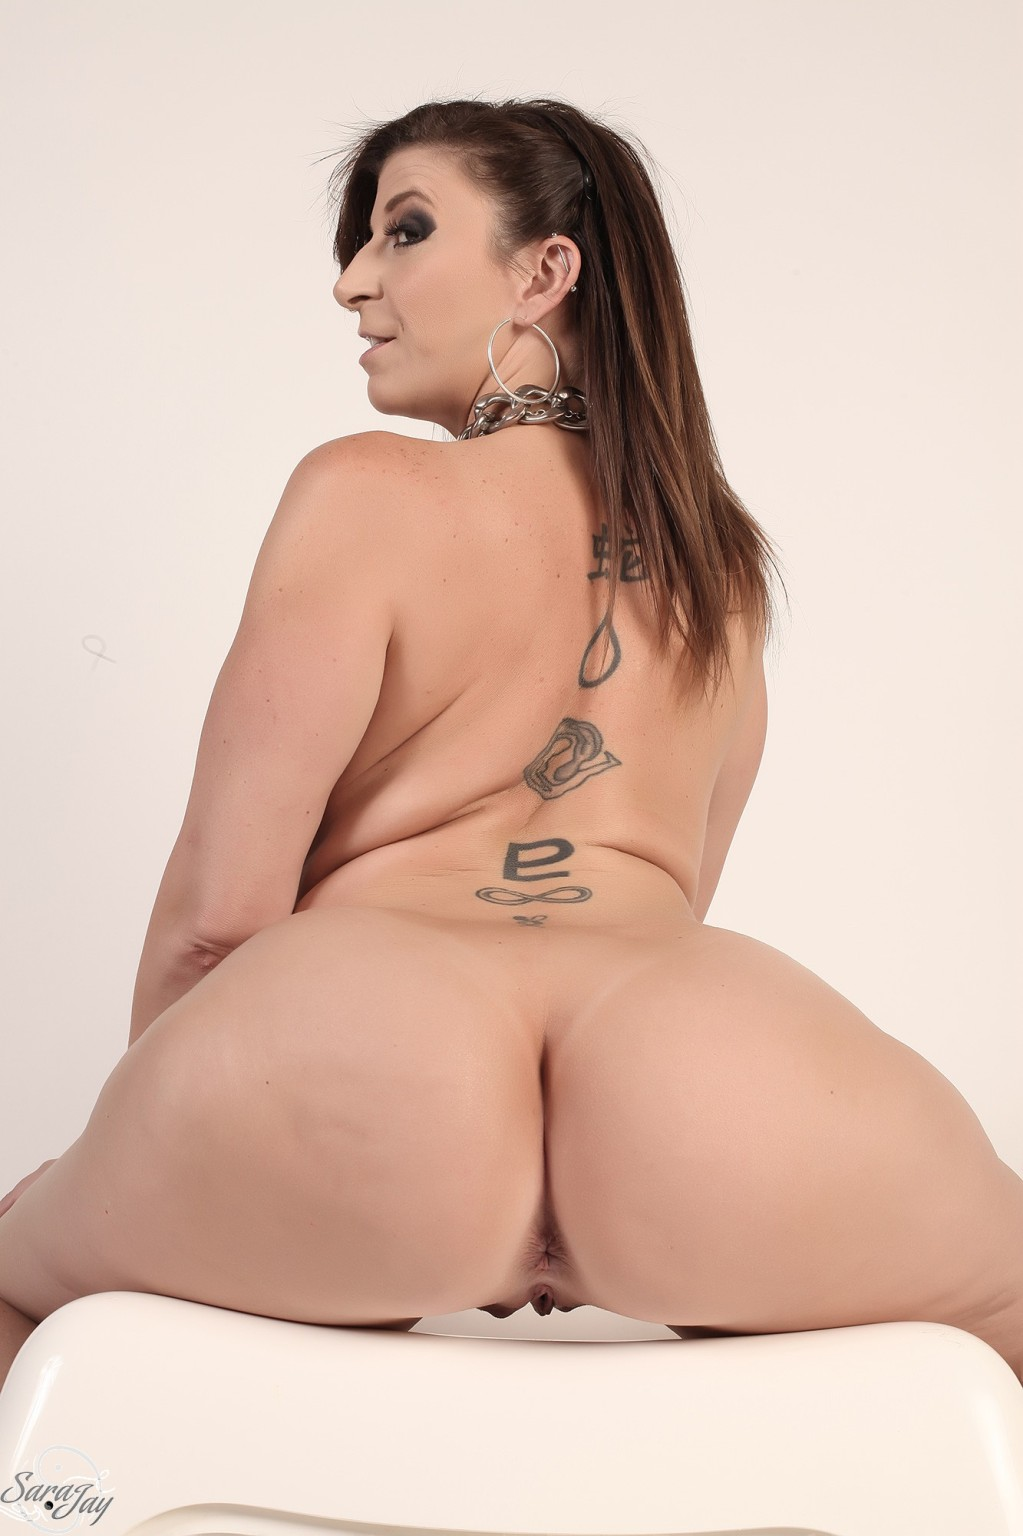 Sara jay naked picture